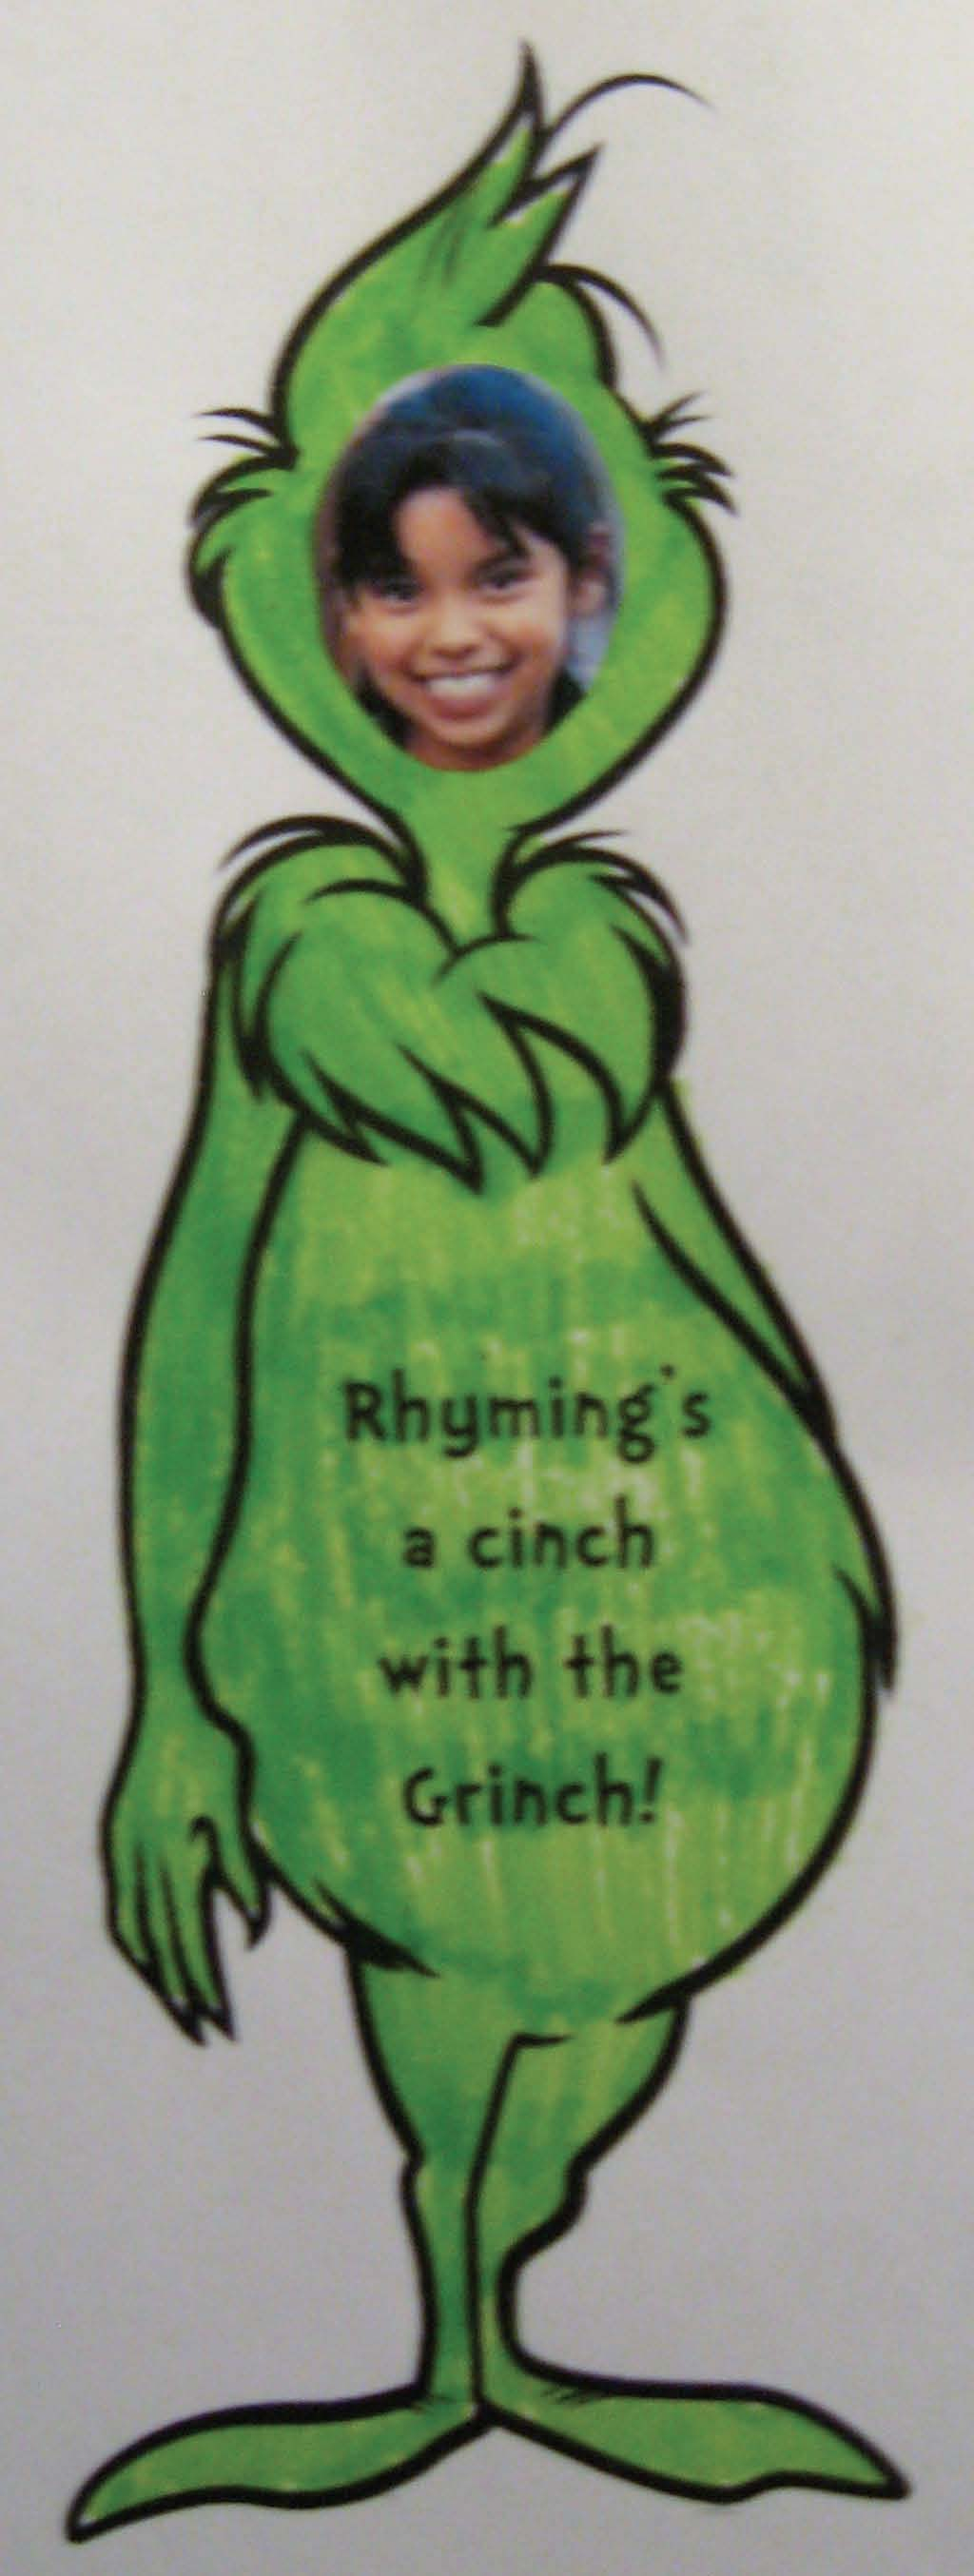 grinch doorknobber craft, seuss crafts, seuss activities, grinch activities grinch crafts, seuss writing prompts